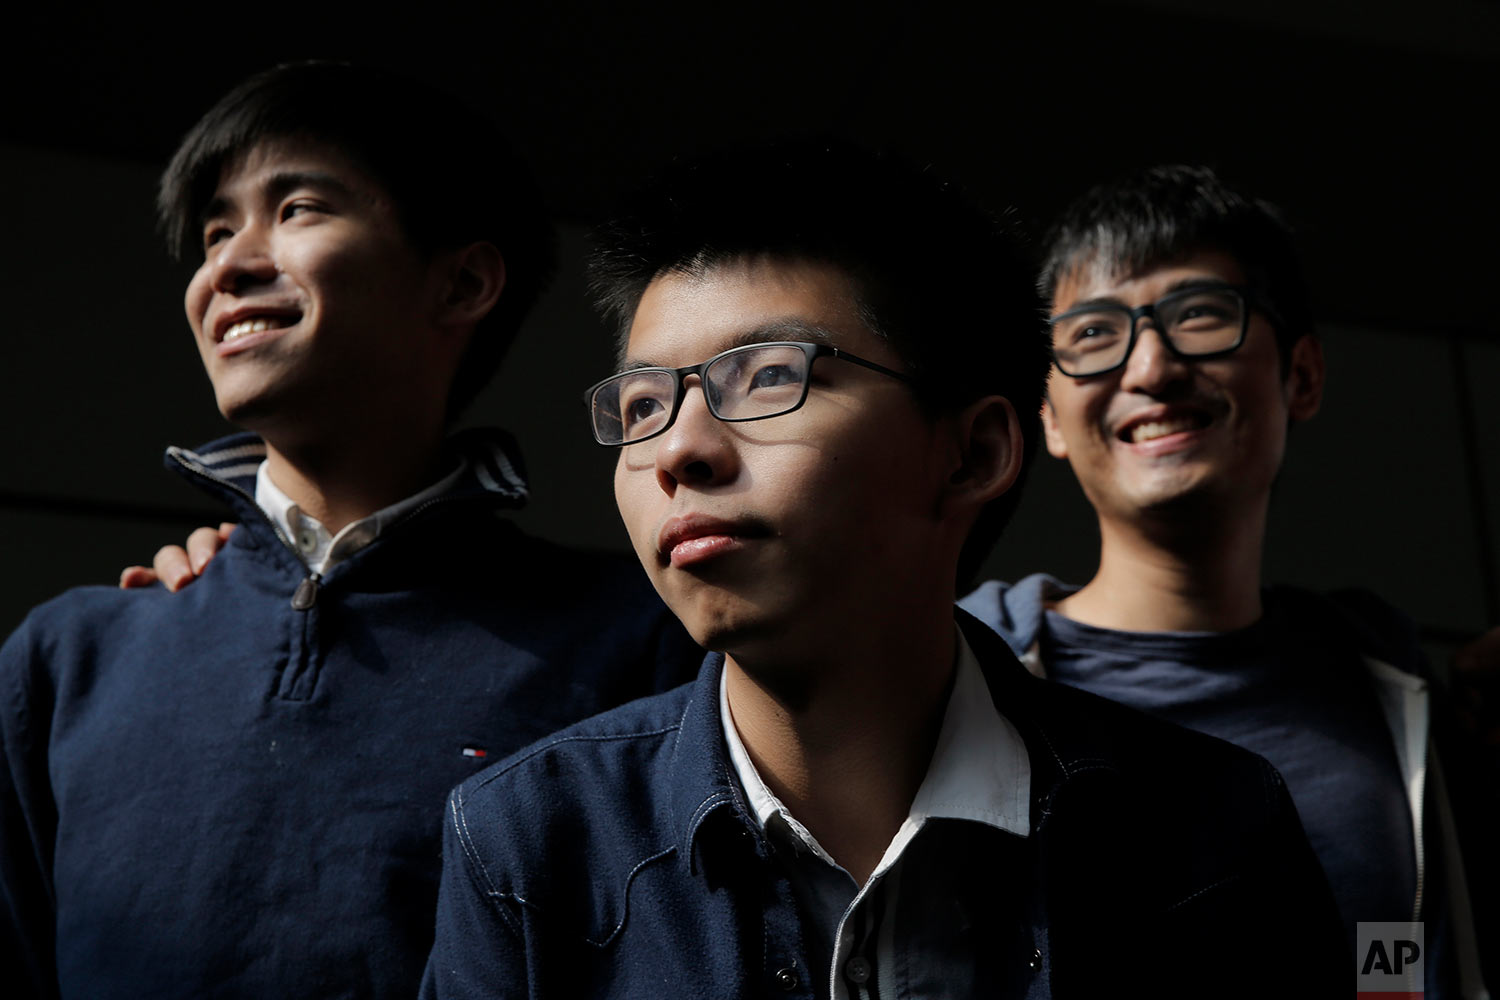 From left, Hong Kong's young democracy leaders Lester Shum, Joshua Wong and Alex Chow pose for photographers in front of the High Court in Hong Kong, Thursday, Dec. 7, 2017. Hong Kong's young democracy leader Joshua Wong faces a possible new prison sentence in a case stemming from 2014 protests in the semiautonomous Chinese city. He's among a group of activists awaiting sentencing Thursday afternoon following their convictions months earlier. (AP Photo/Kin Cheung)